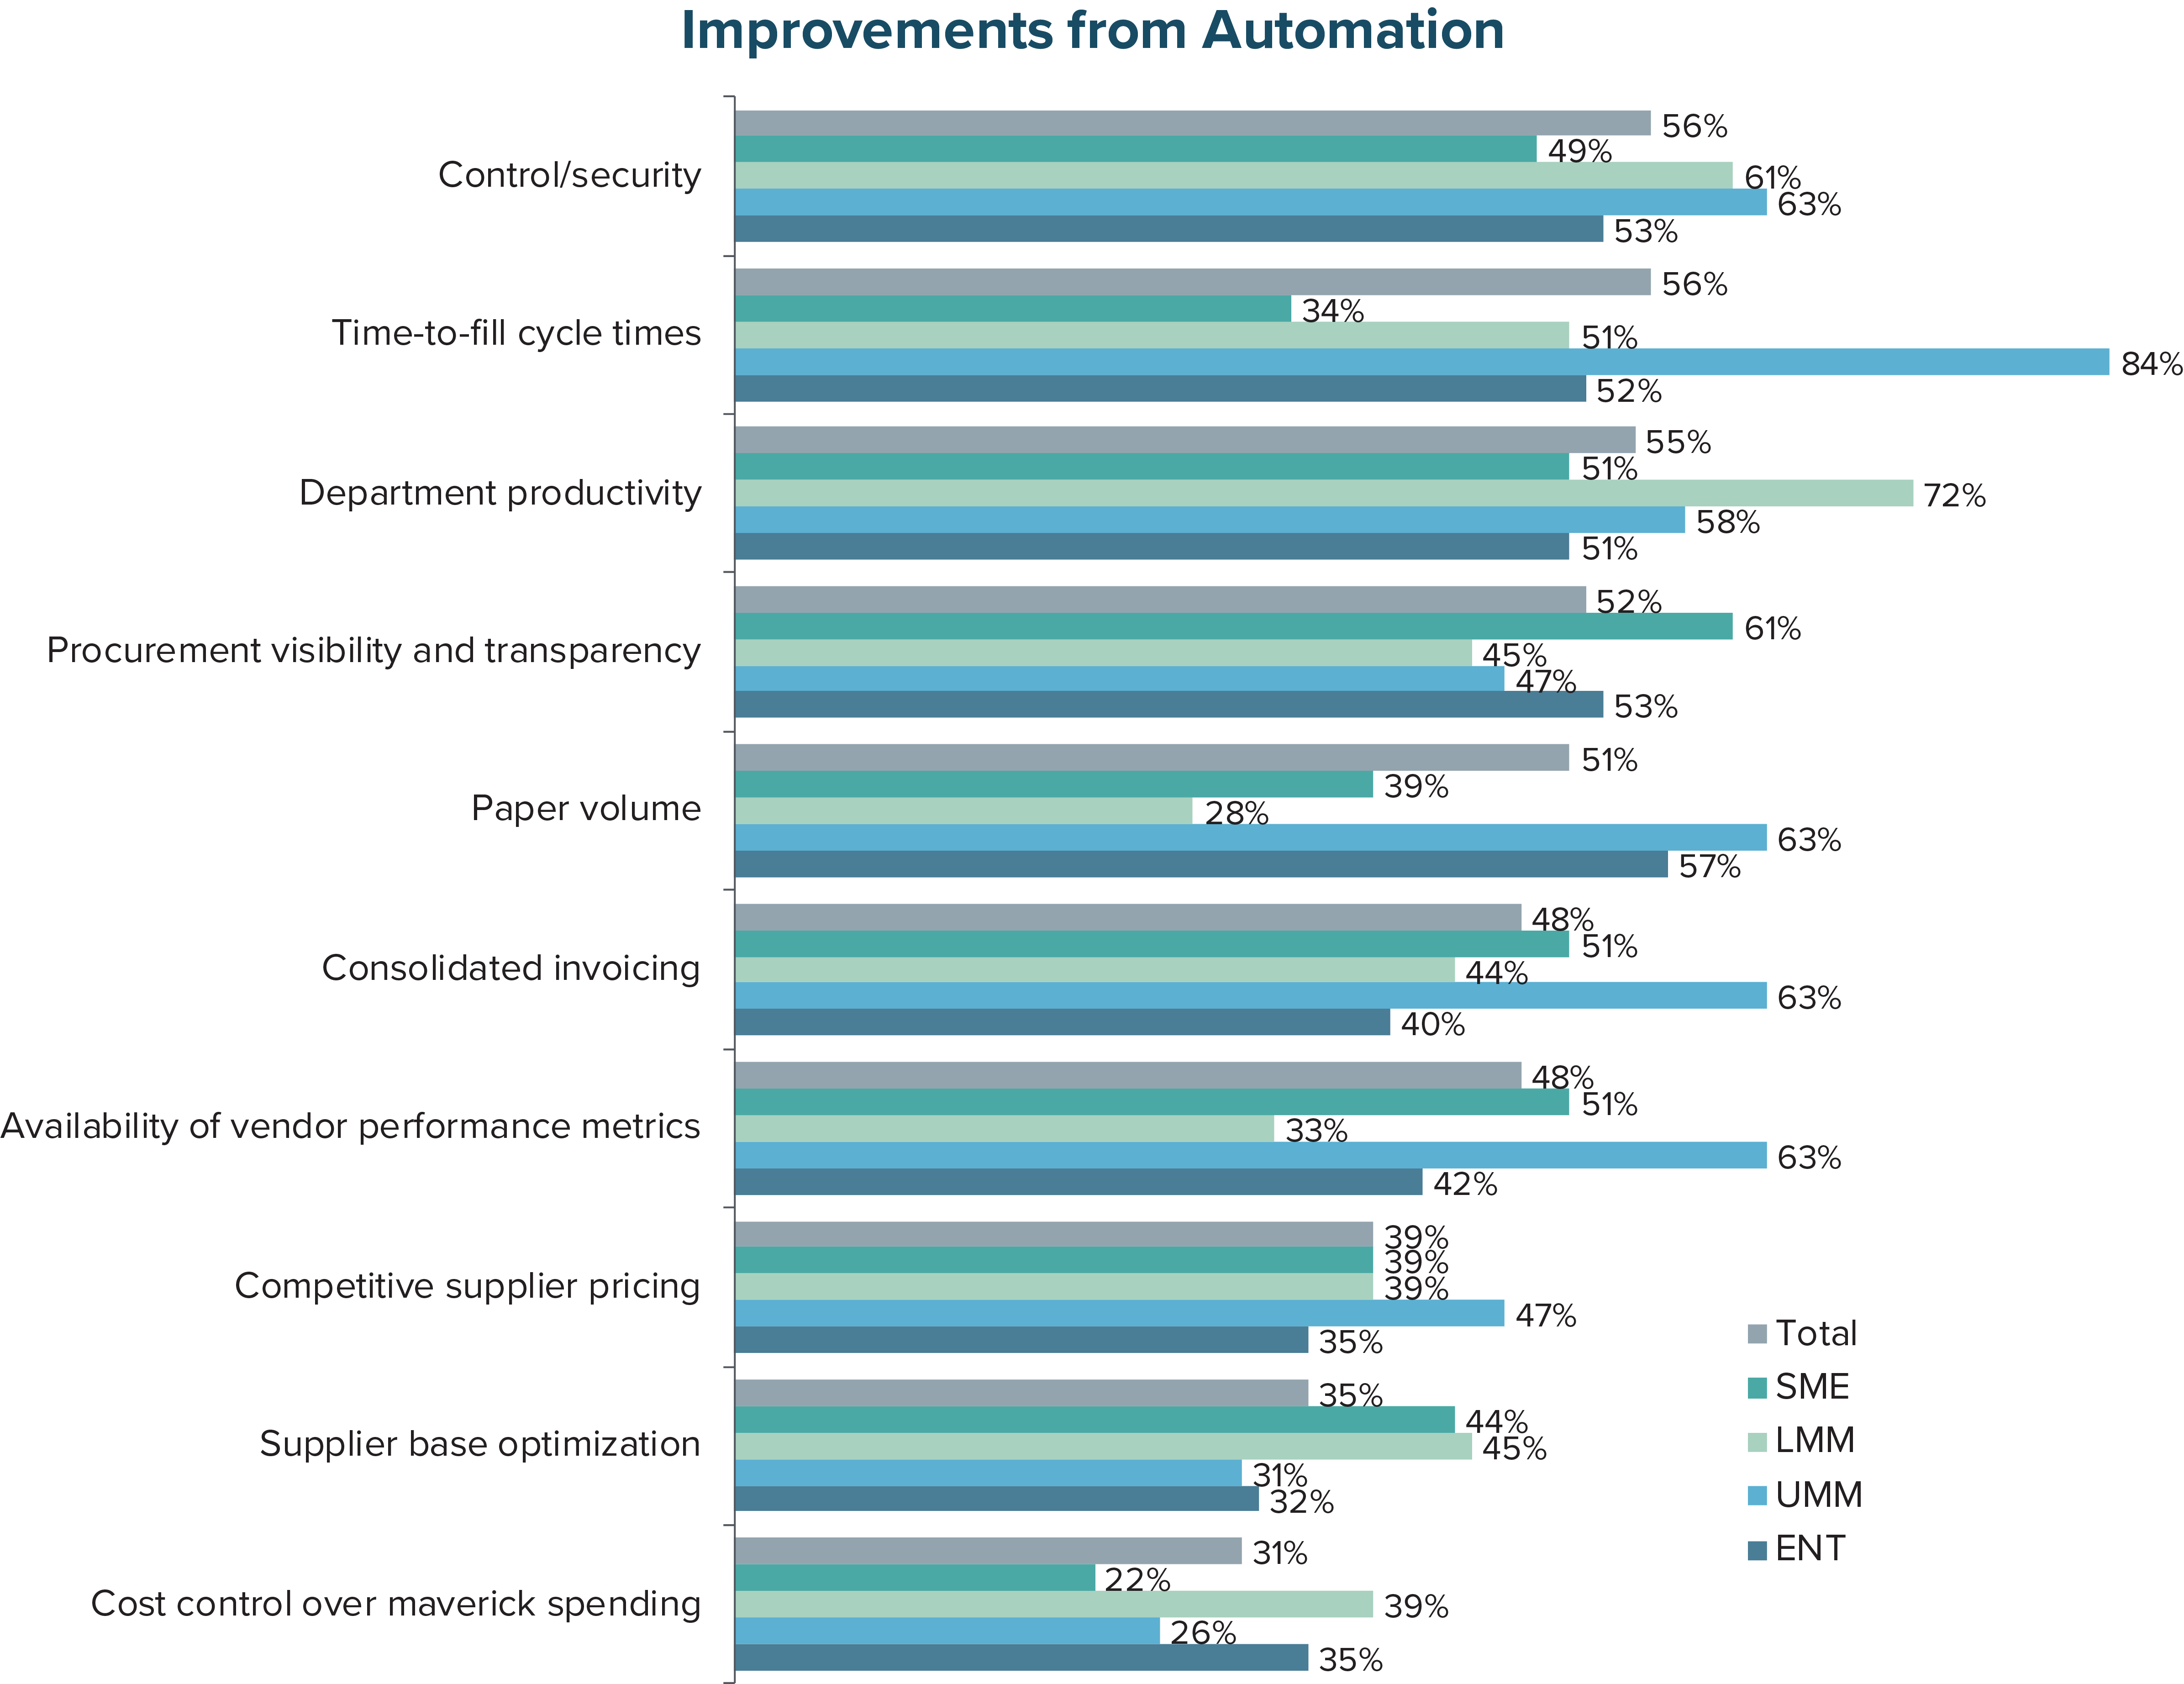 Improvements from Automation